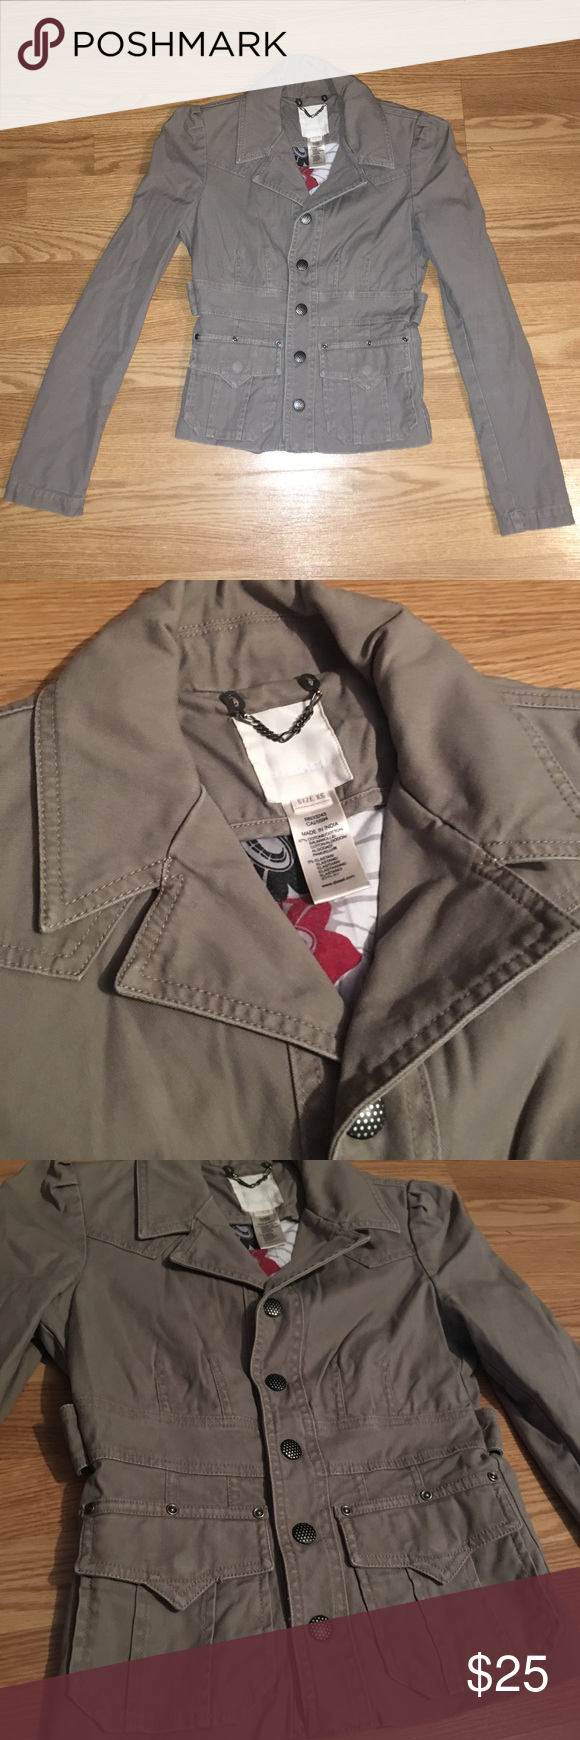 Diesel Jacket Size XS, length: 20' armpit to armpit: 16' very nice jacket, extra small jacket in great condition 97% cotton, 3% elastan Diesel Jackets & Coats